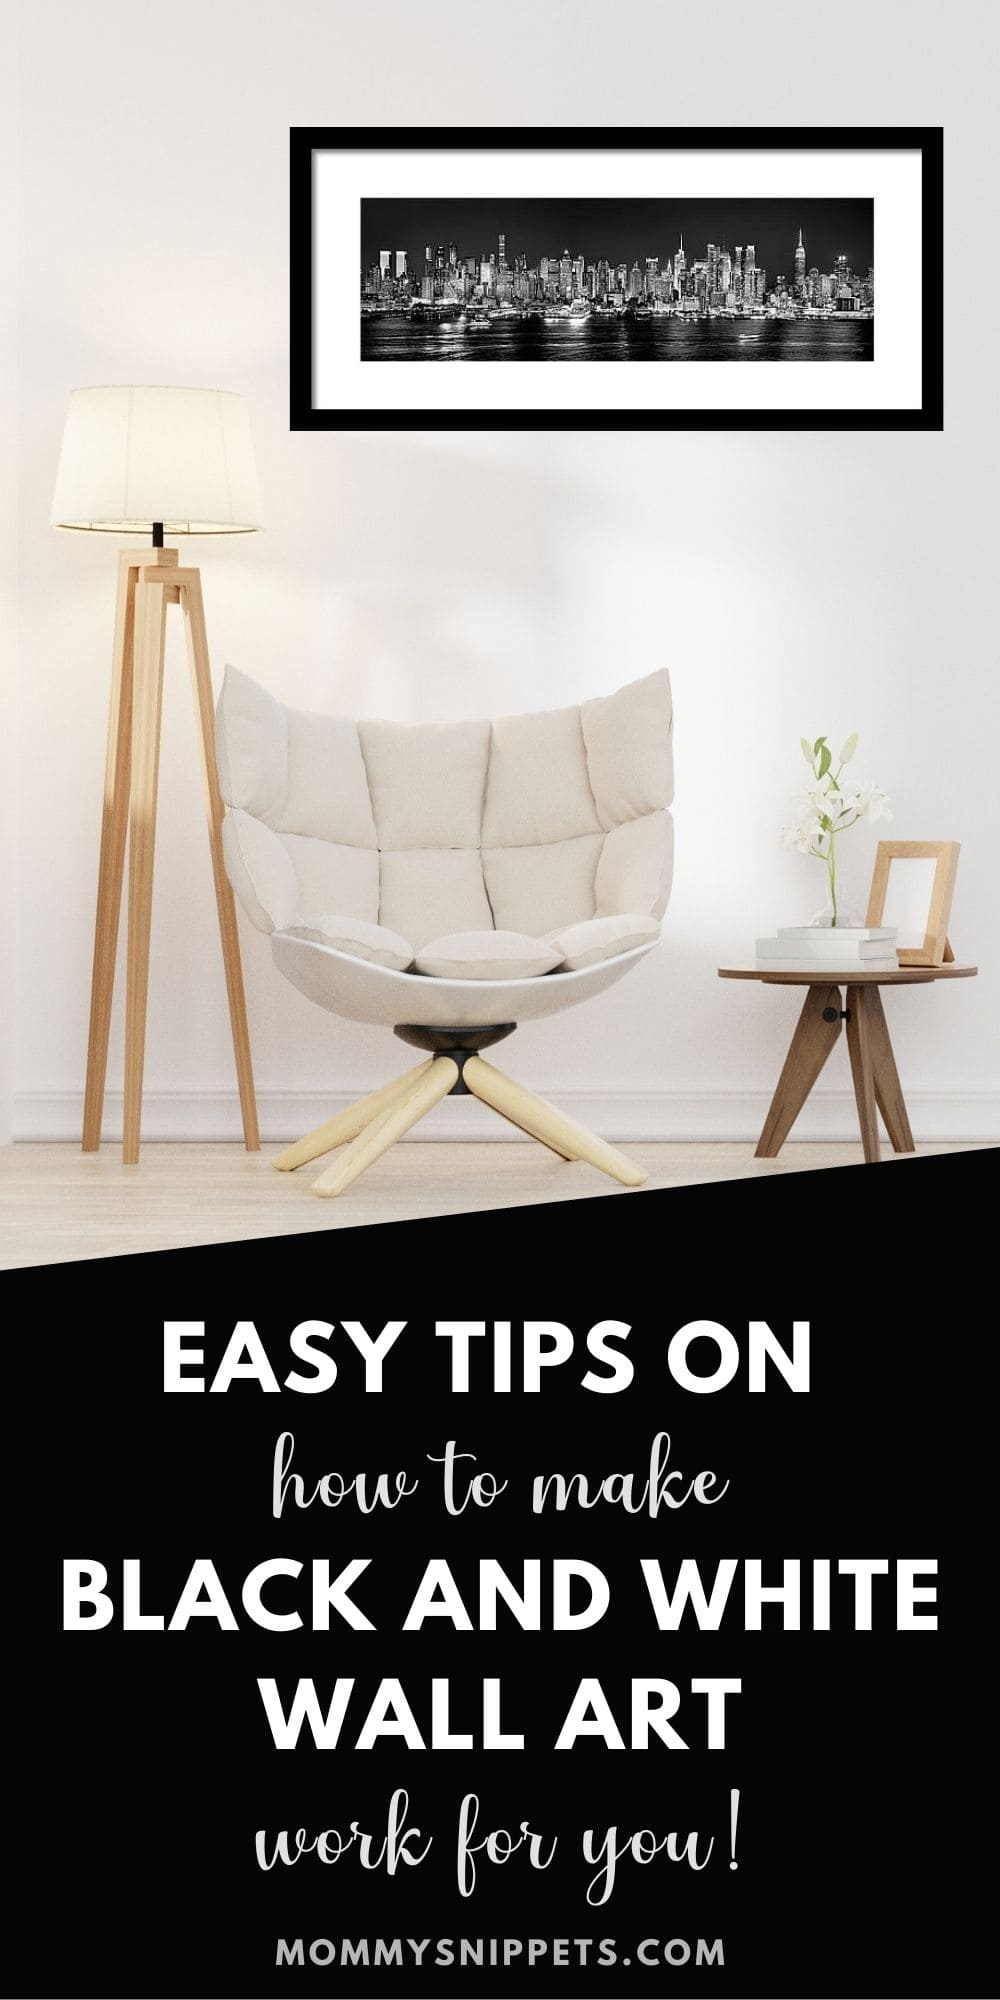 Easy Tips on How To Make Black and White Wall Art Work